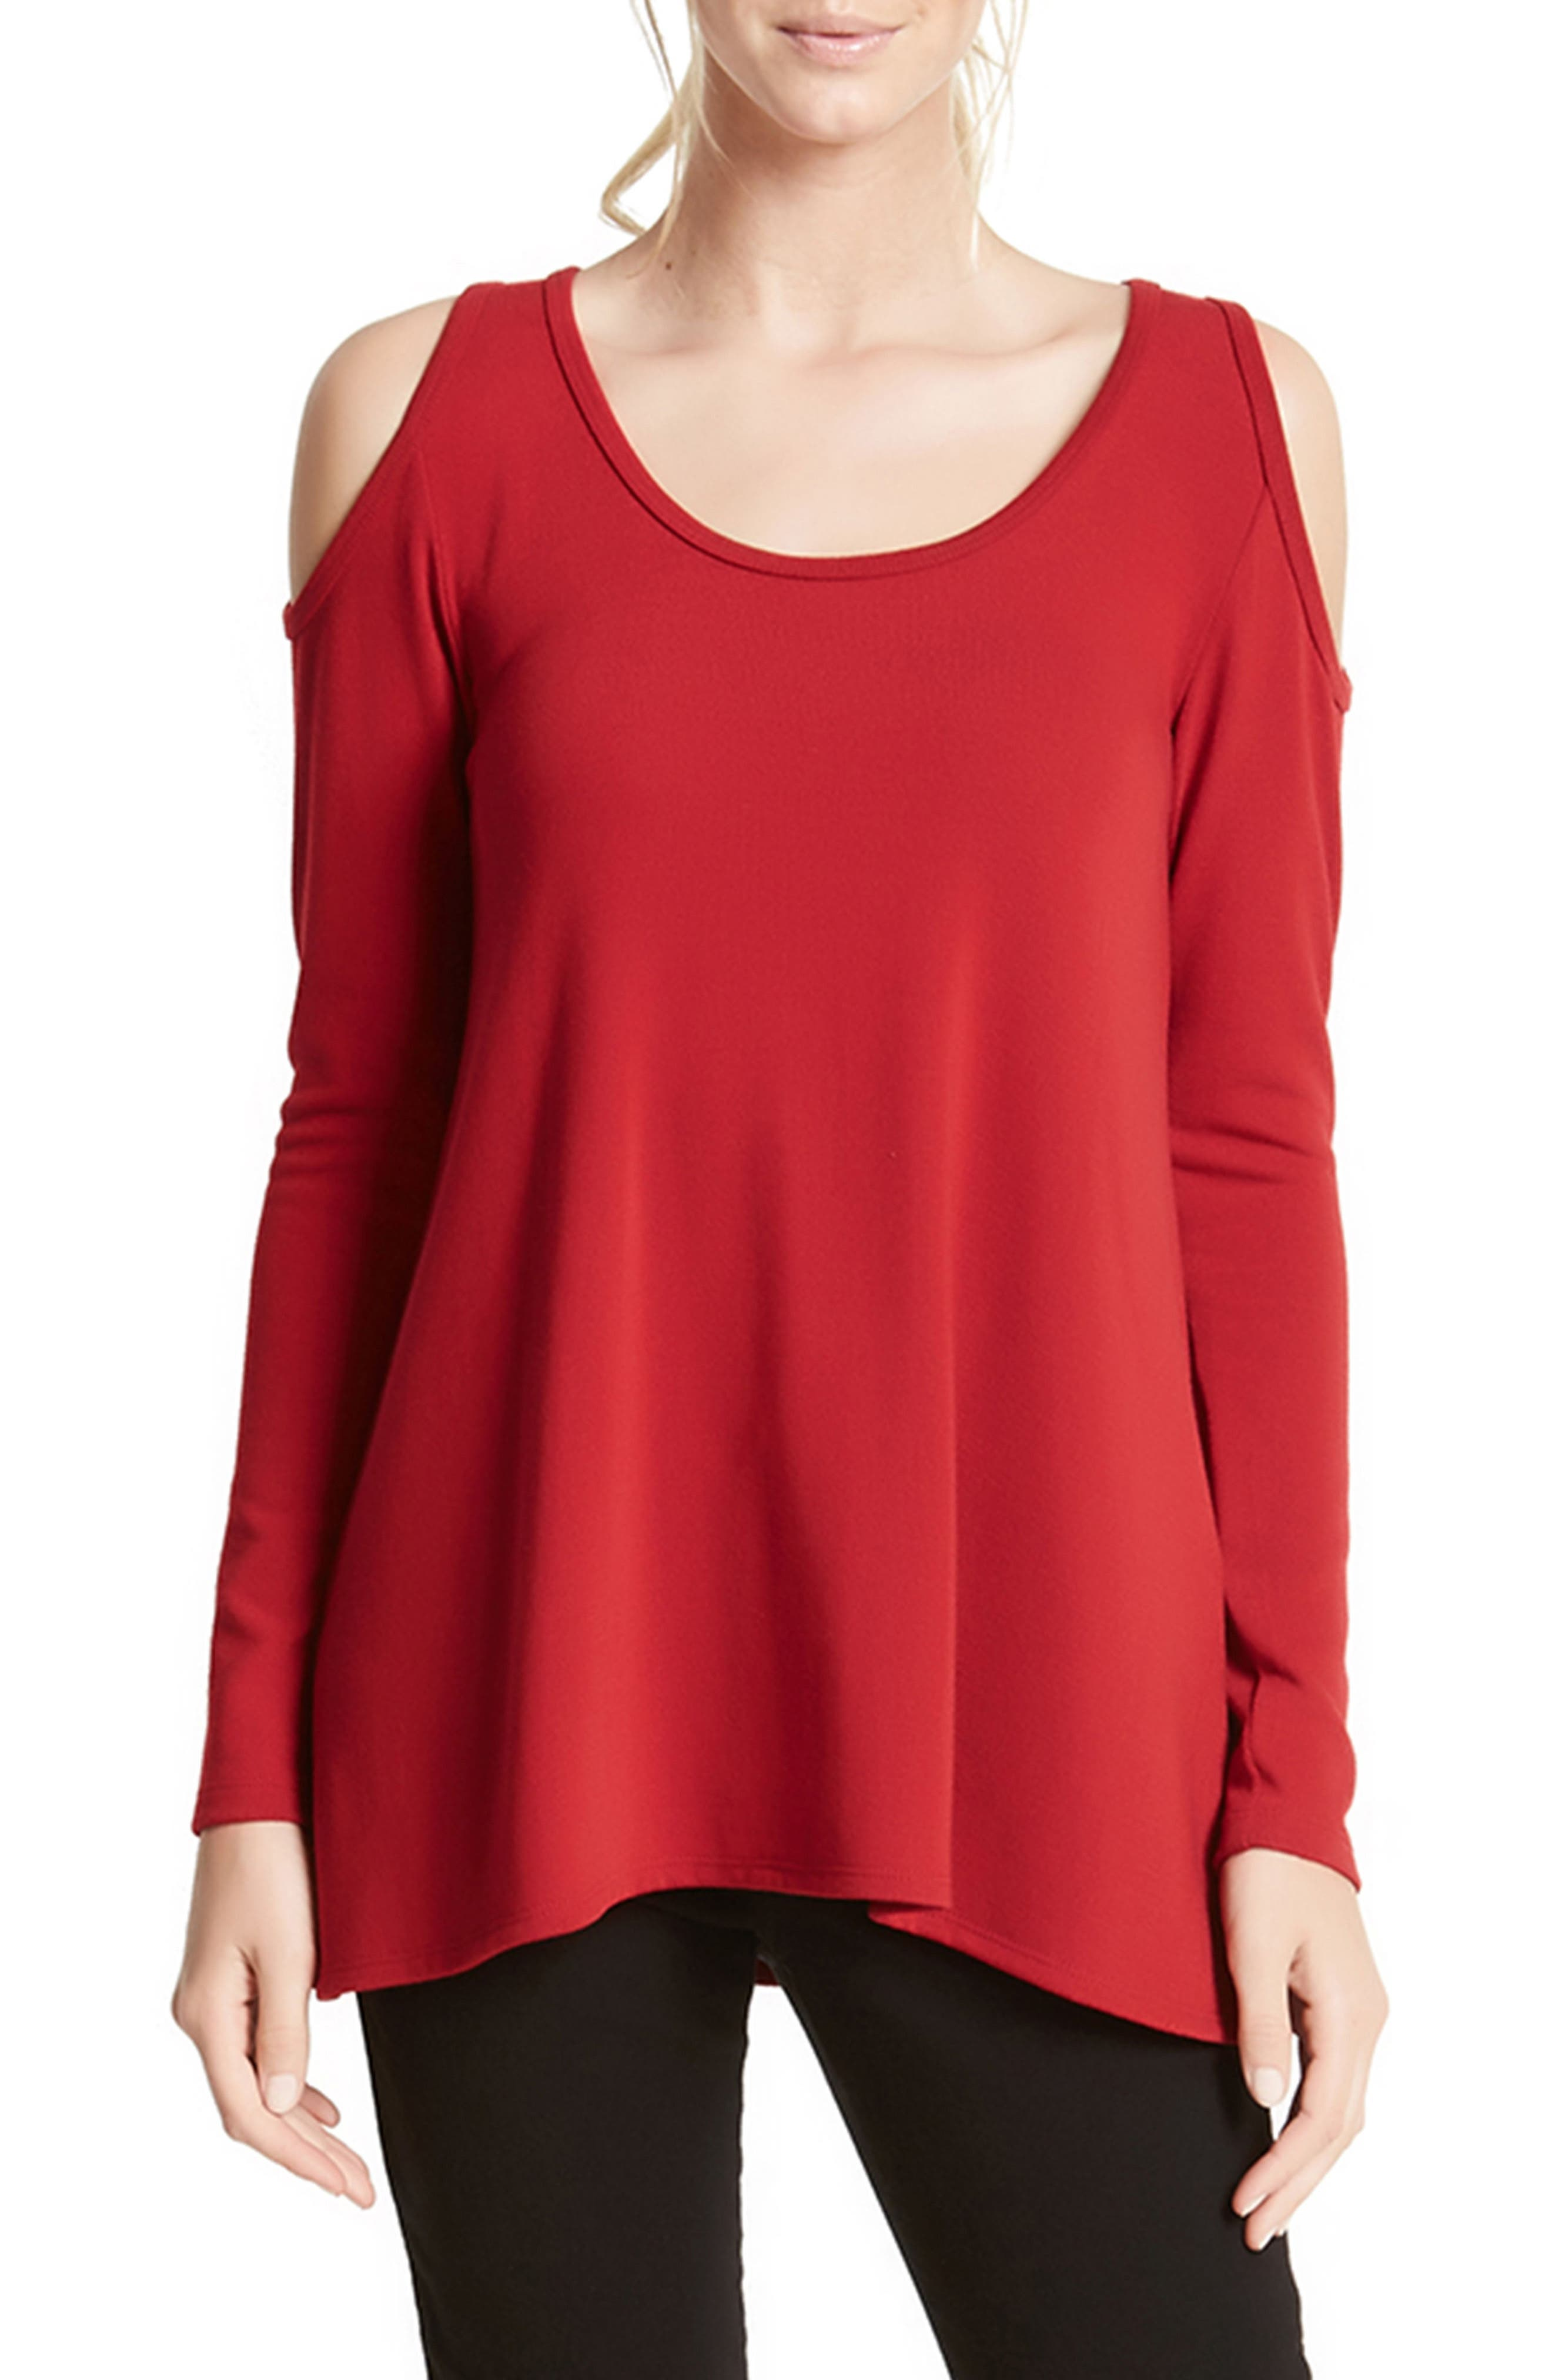 Alternate Image 1 Selected - Karen Kane High/Low Cold Shoulder Sweater